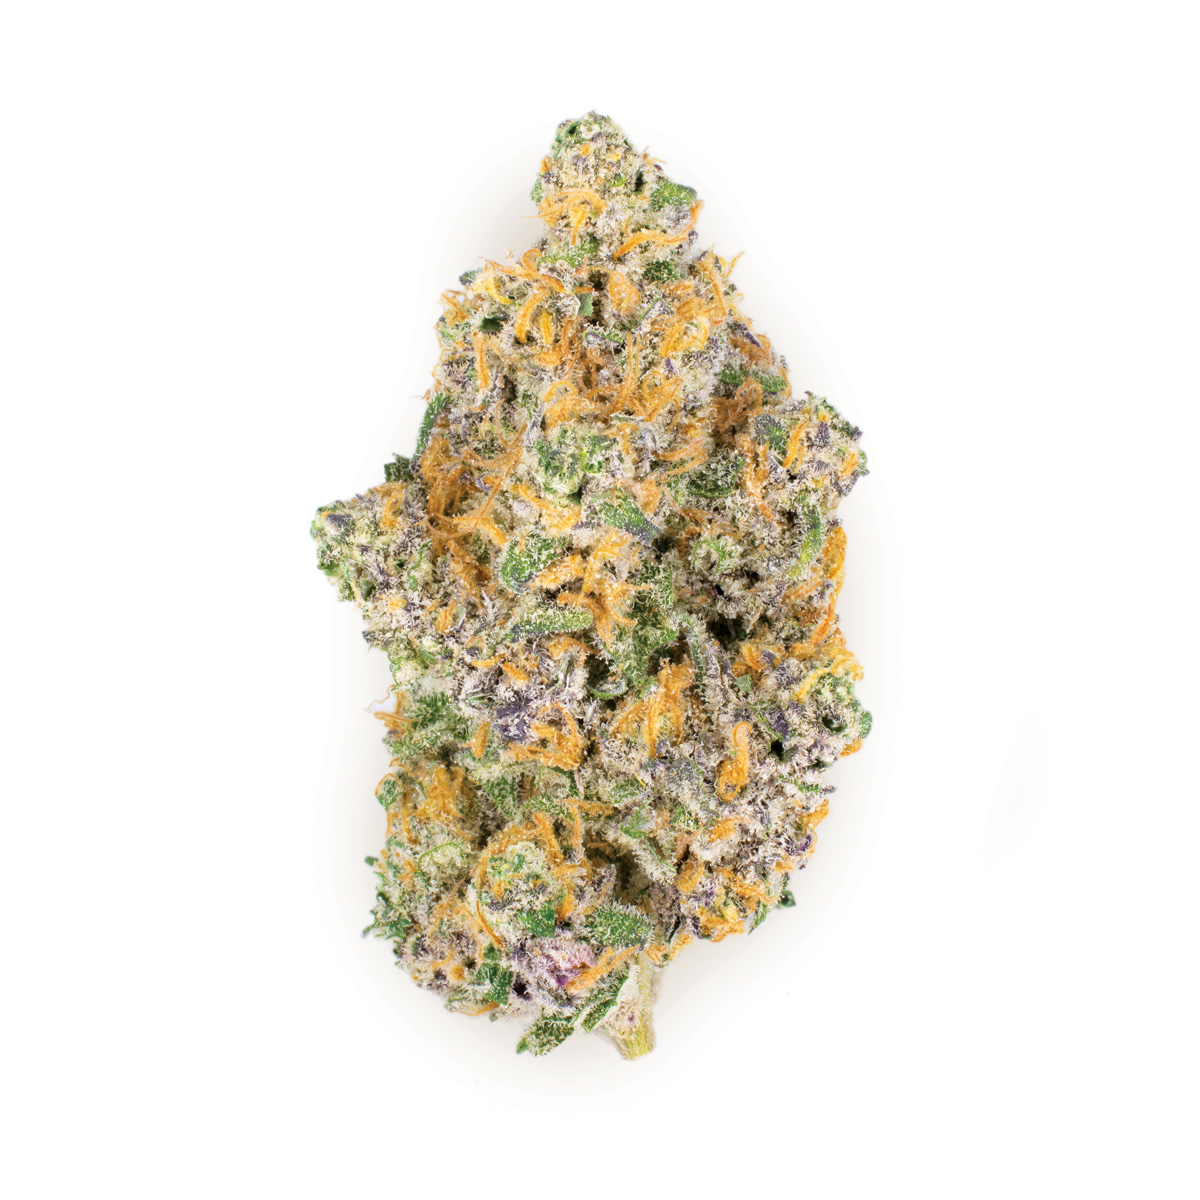 Berry jane - Sativa Dominant Hybrid26.7% THC | .17% CBDBerry Jane is sativa-dominant cross between Sweet Jane and Very Berry Haze. This strain produces popcorn-shaped buds with dark orange hairs and a high THC yield. Its fruity taste is both relaxing and uplifting.